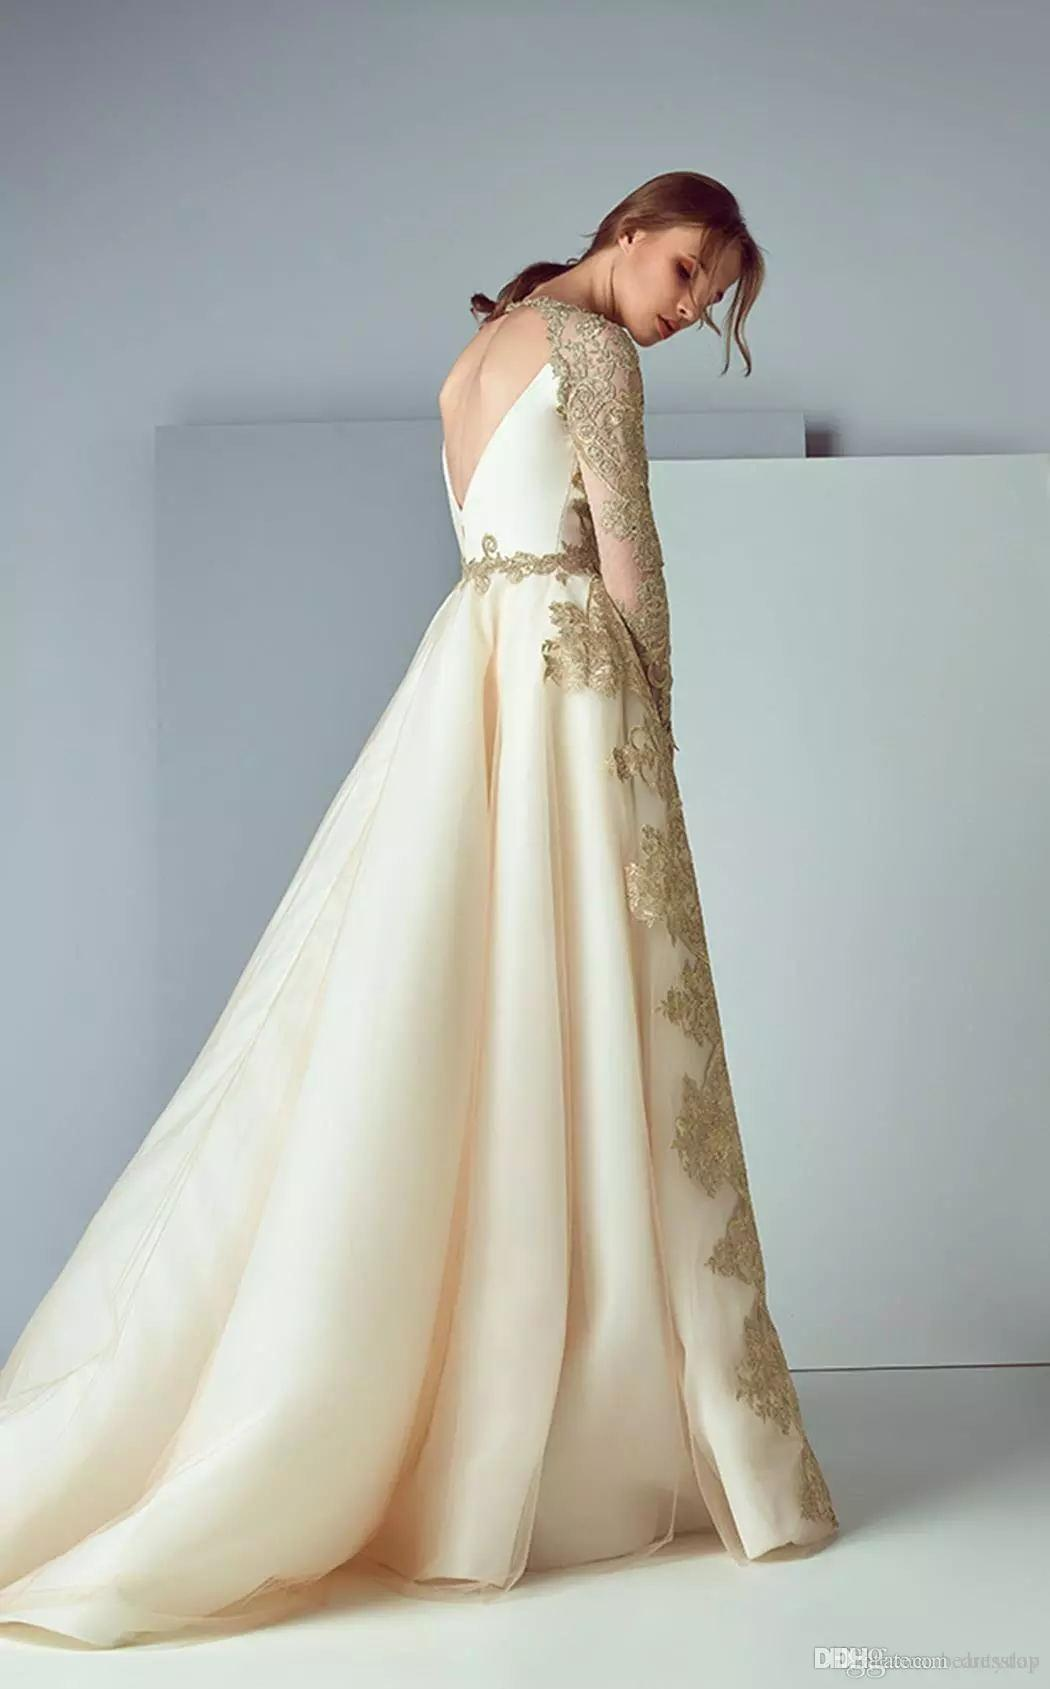 Awesome 20s Style Prom Dress Contemporary - Wedding Ideas ...